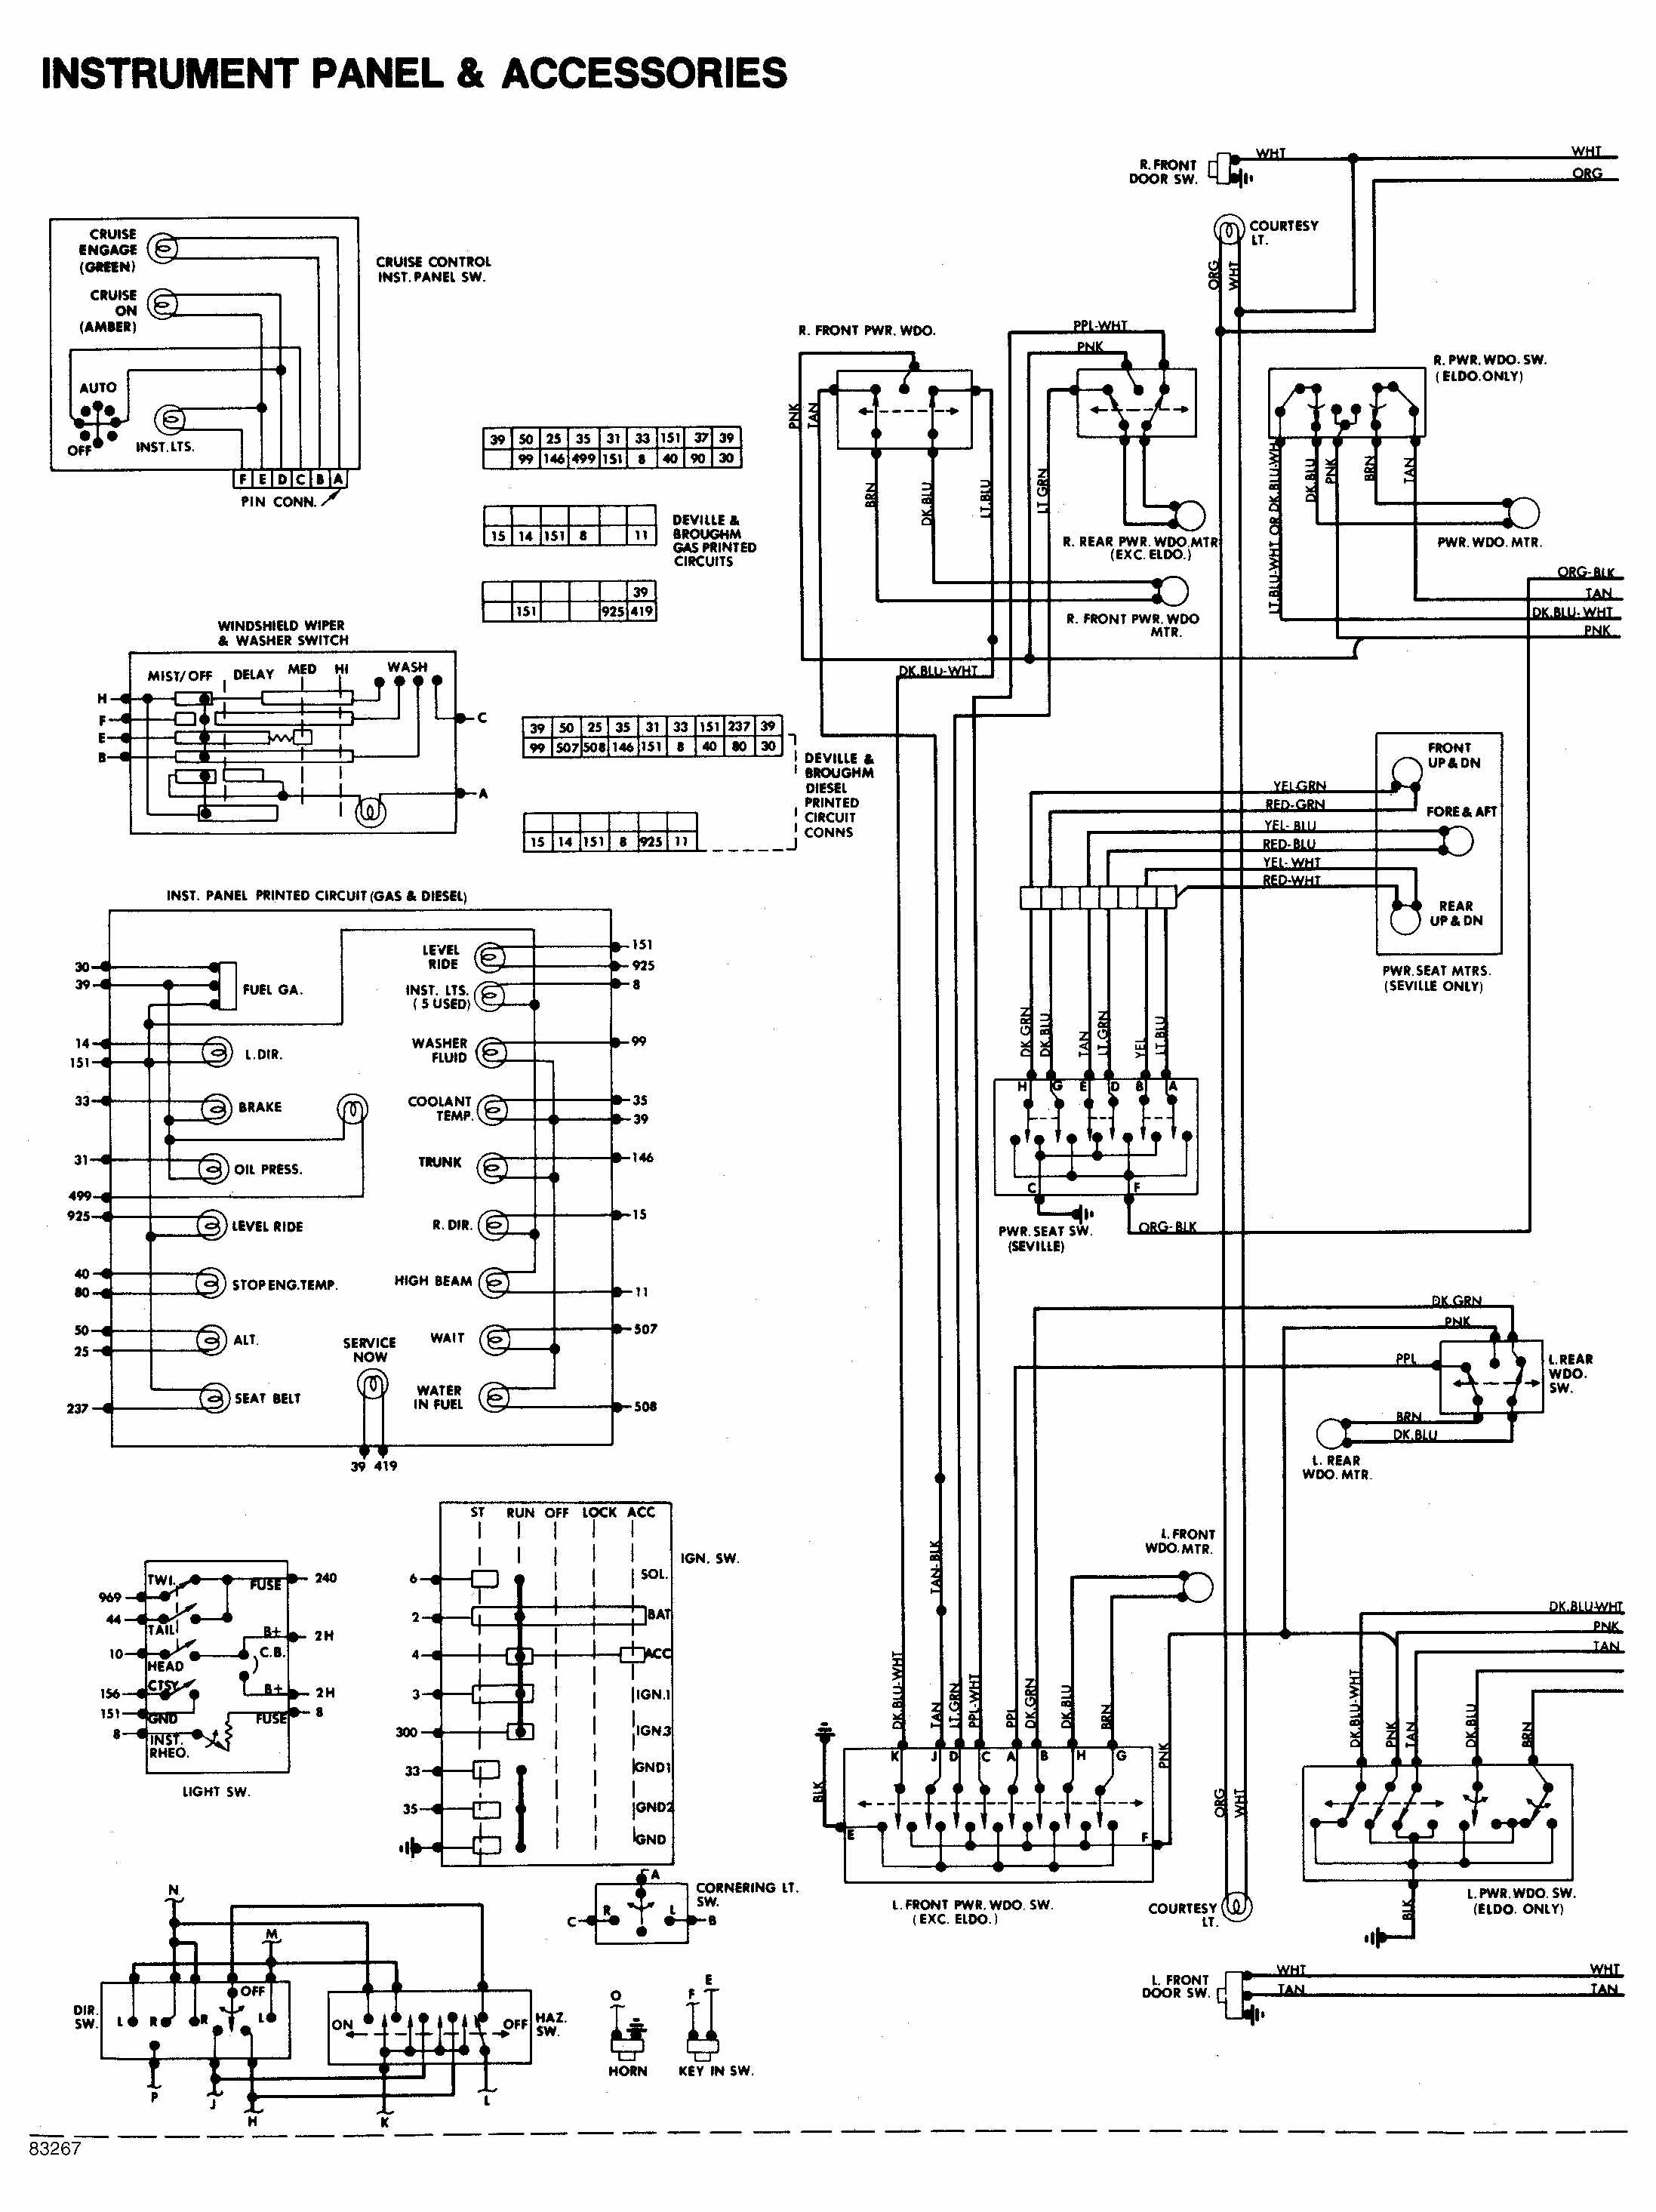 instrument panel and accessories wiring diagram of 1984 cadillac deville gm wiring diagrams 95 98 gm truck wiring diagrams \u2022 wiring 2004 cadillac escalade wiring diagram at et-consult.org